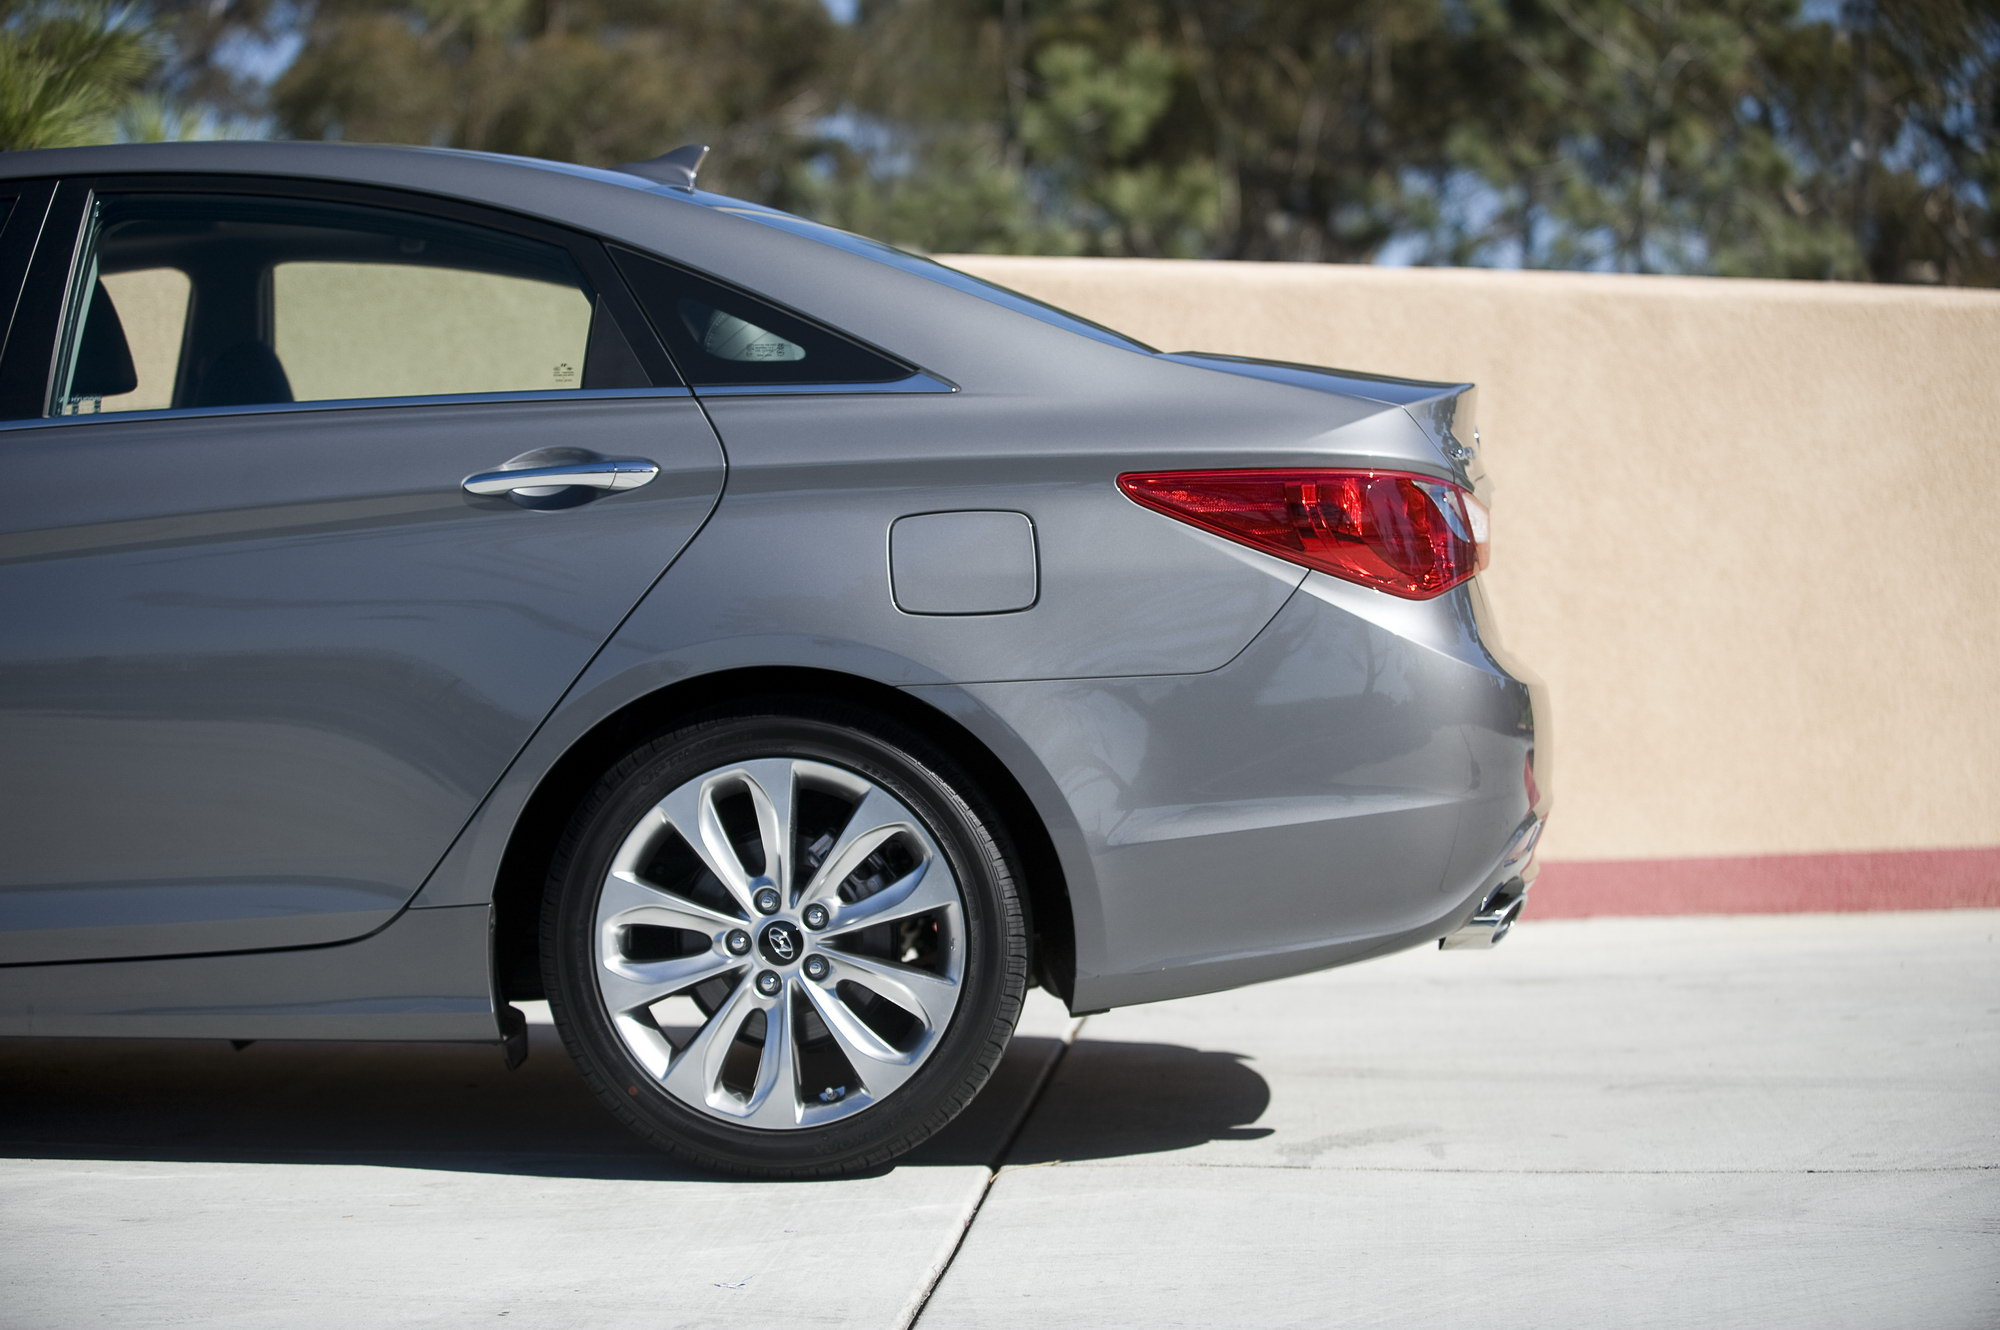 Hyundai Sonata: Tire terminology and definitions